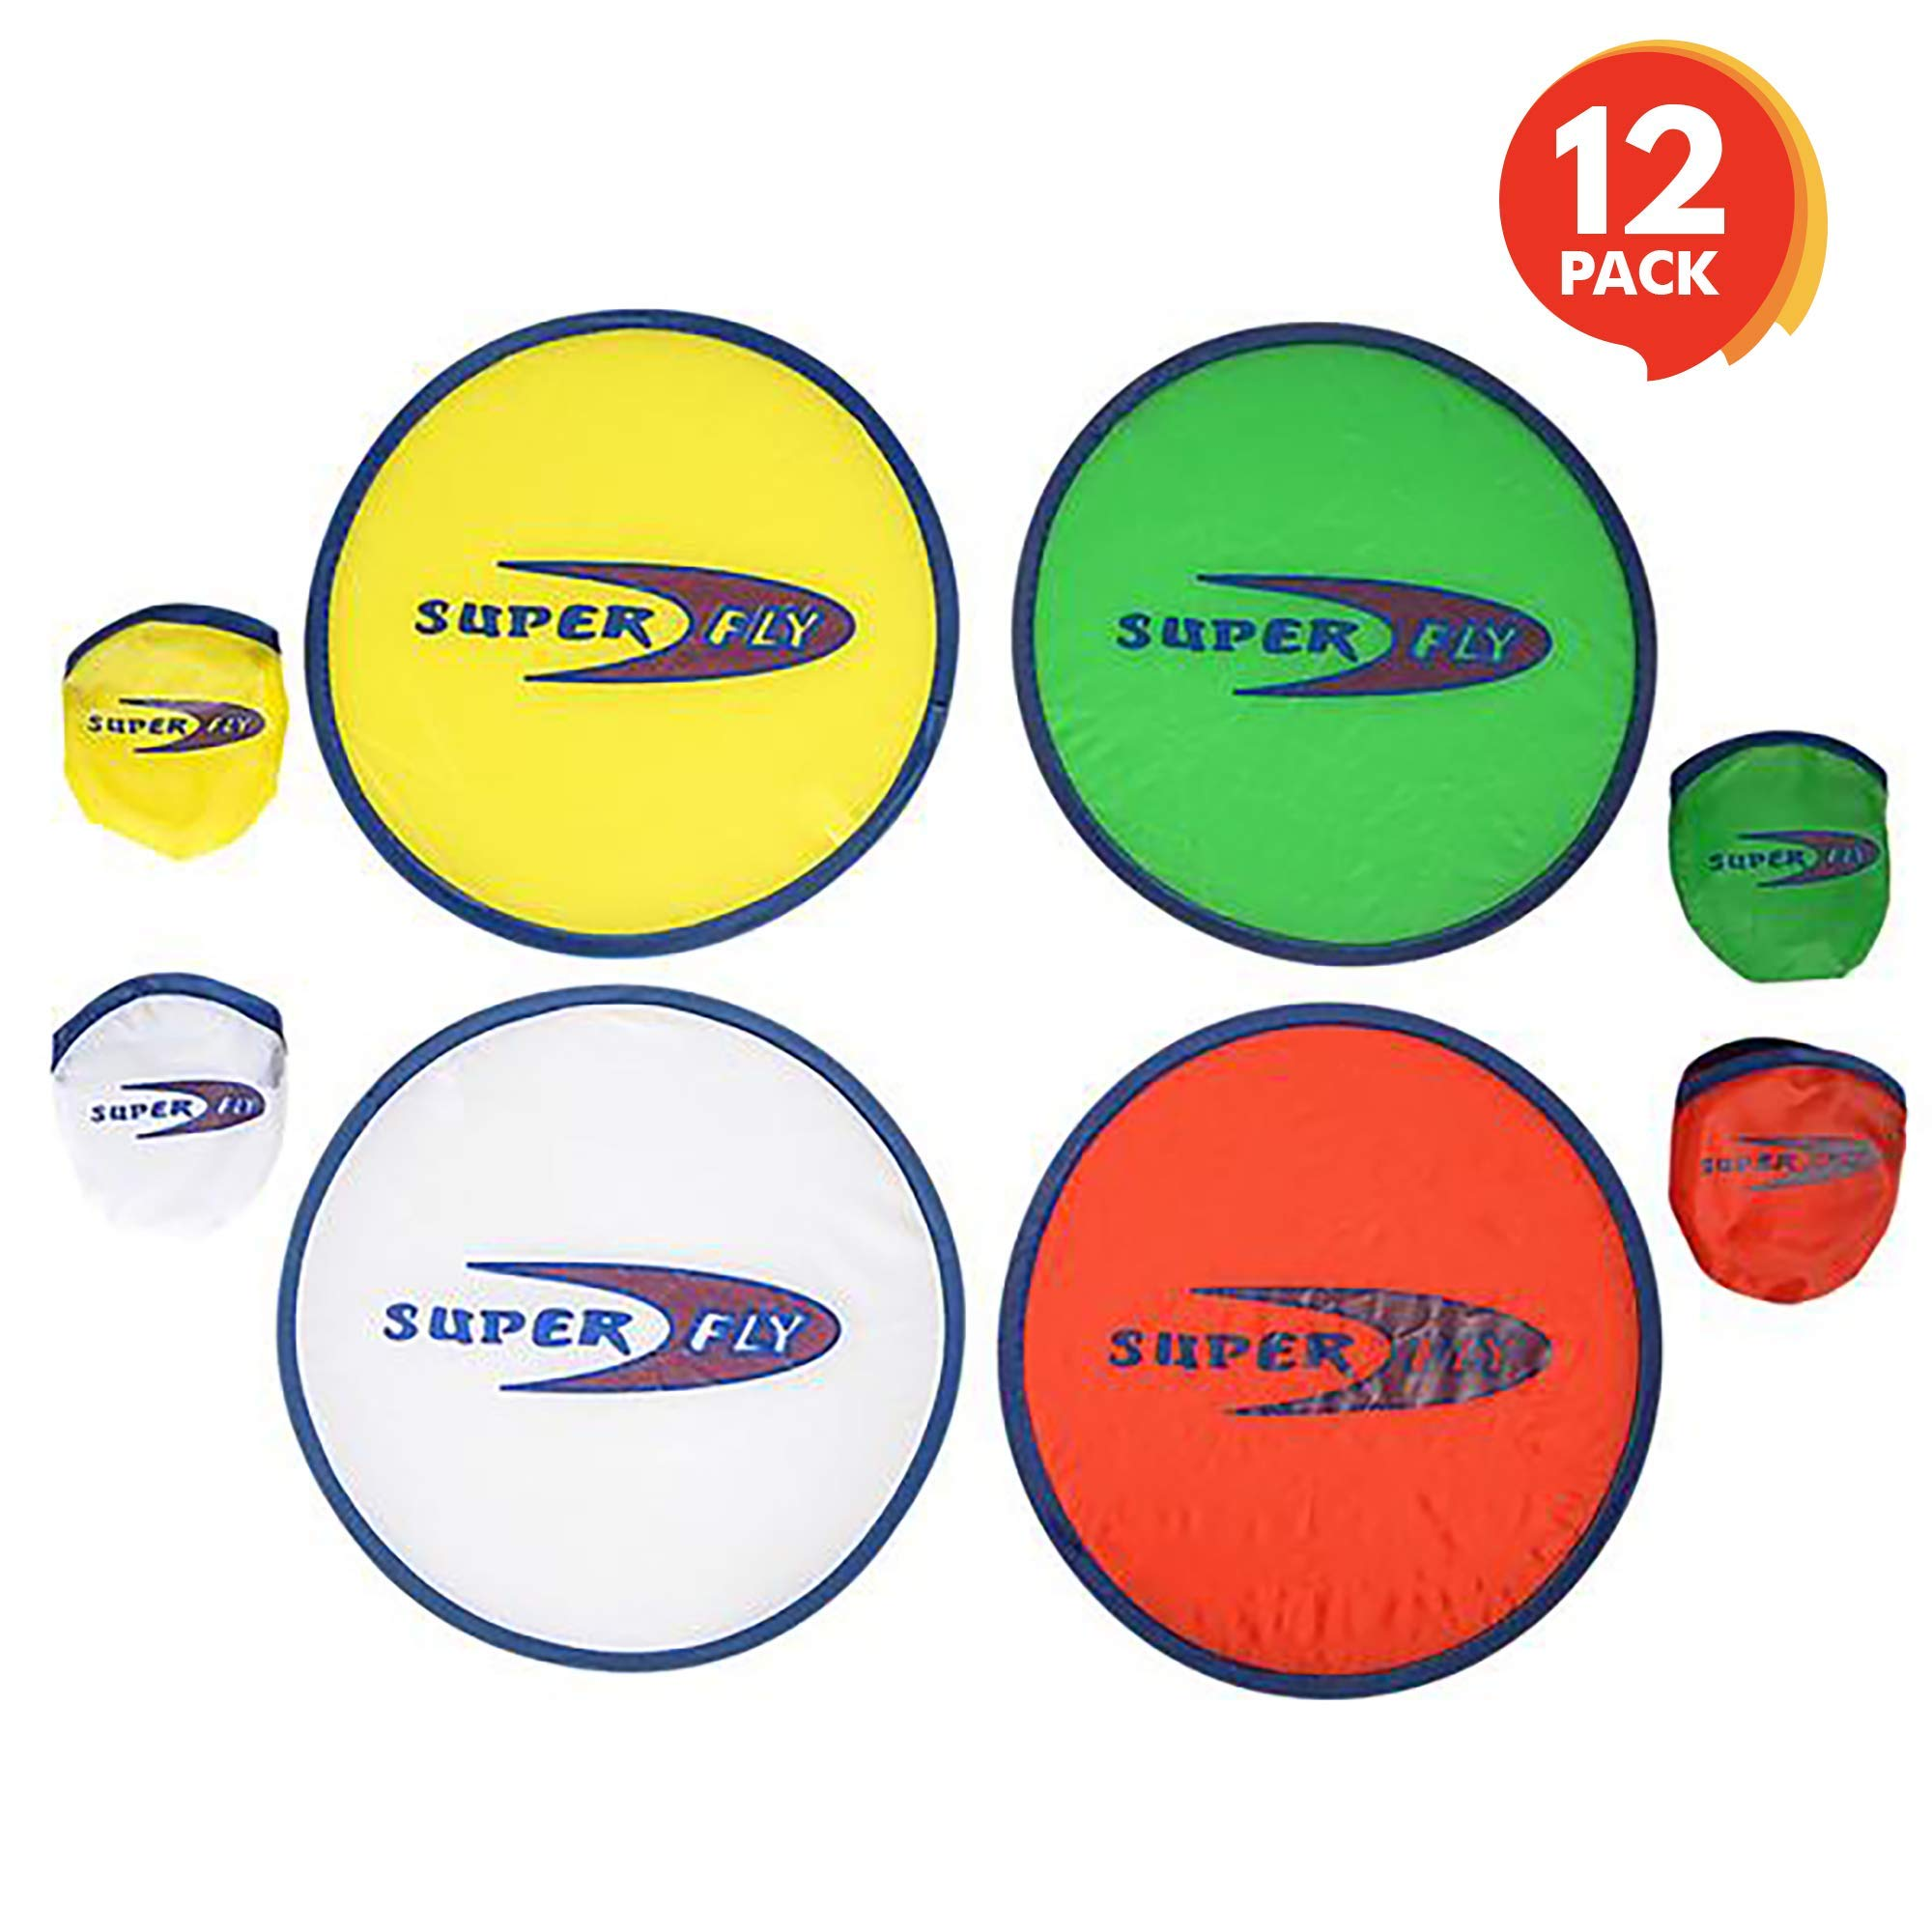 ArtCreativity Folding Pocket Frisbee Set (12 Pack) | Foldable Frisbees for Kids and Adults | Colorful Flying Disc Toys | Fun Birthday Party Favors for Boys and Girls/ Summer Outdoor Activity Game